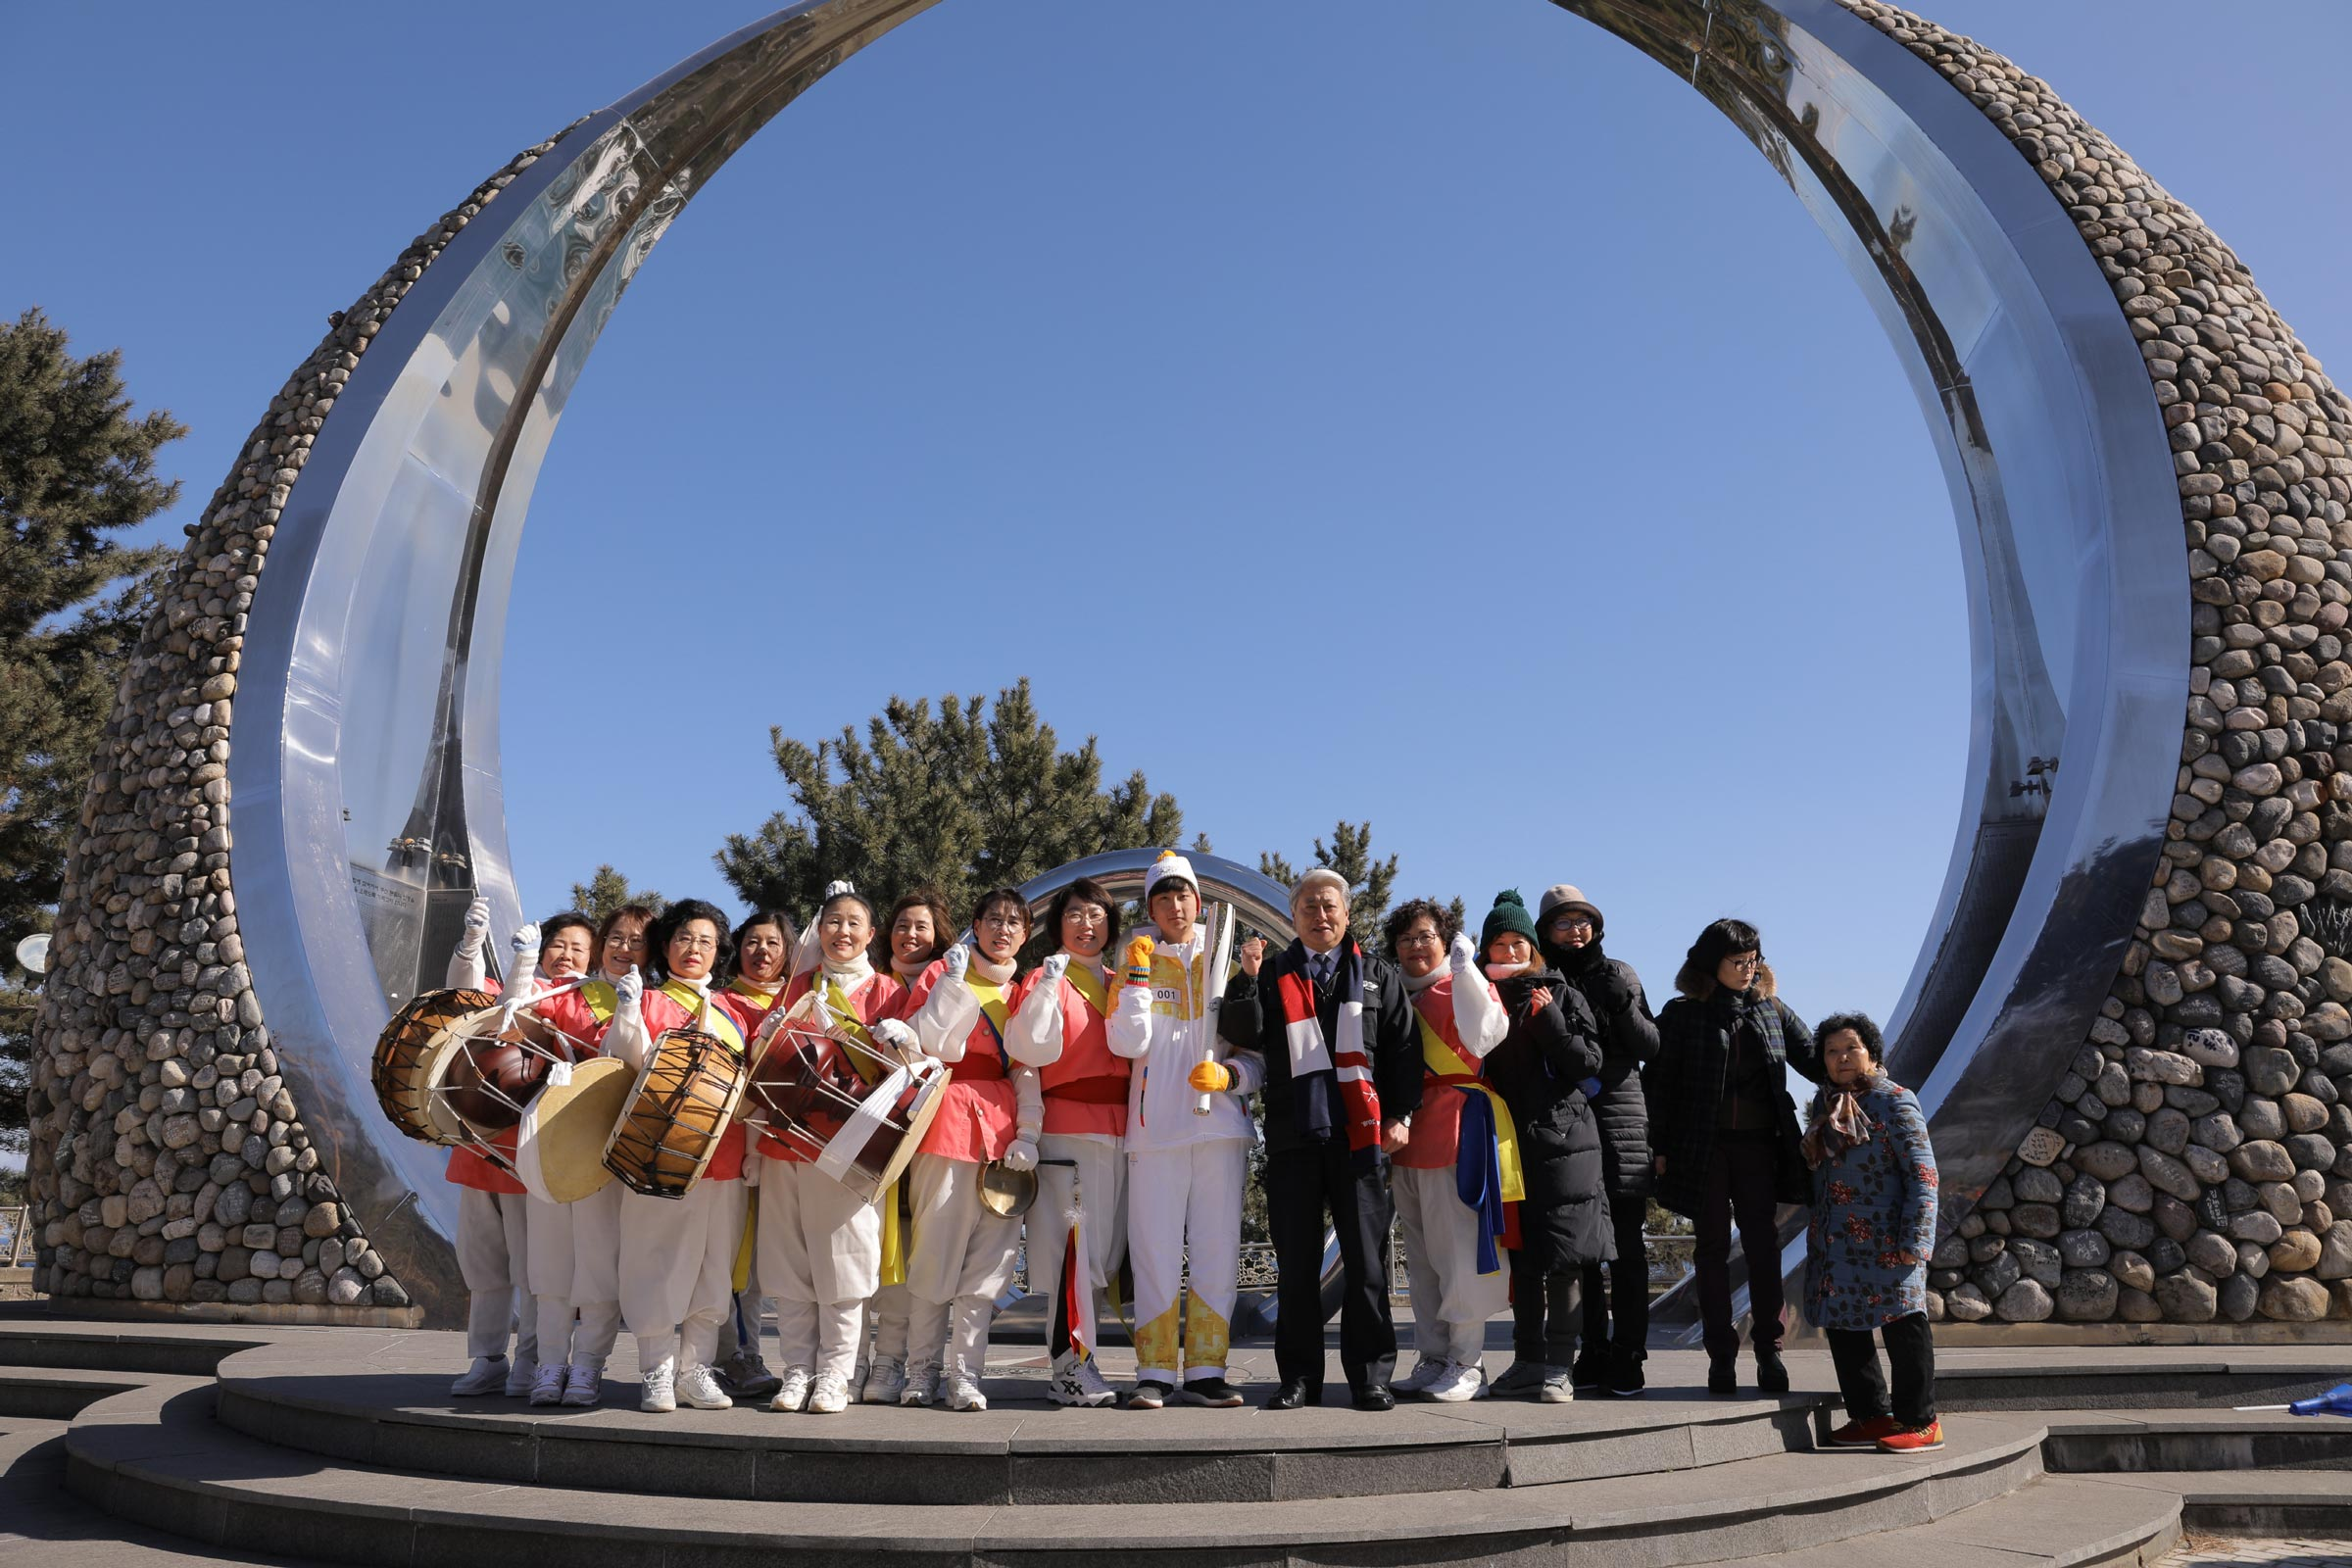 PyeongChang 2018 Olympic Torch Relay - Day 97